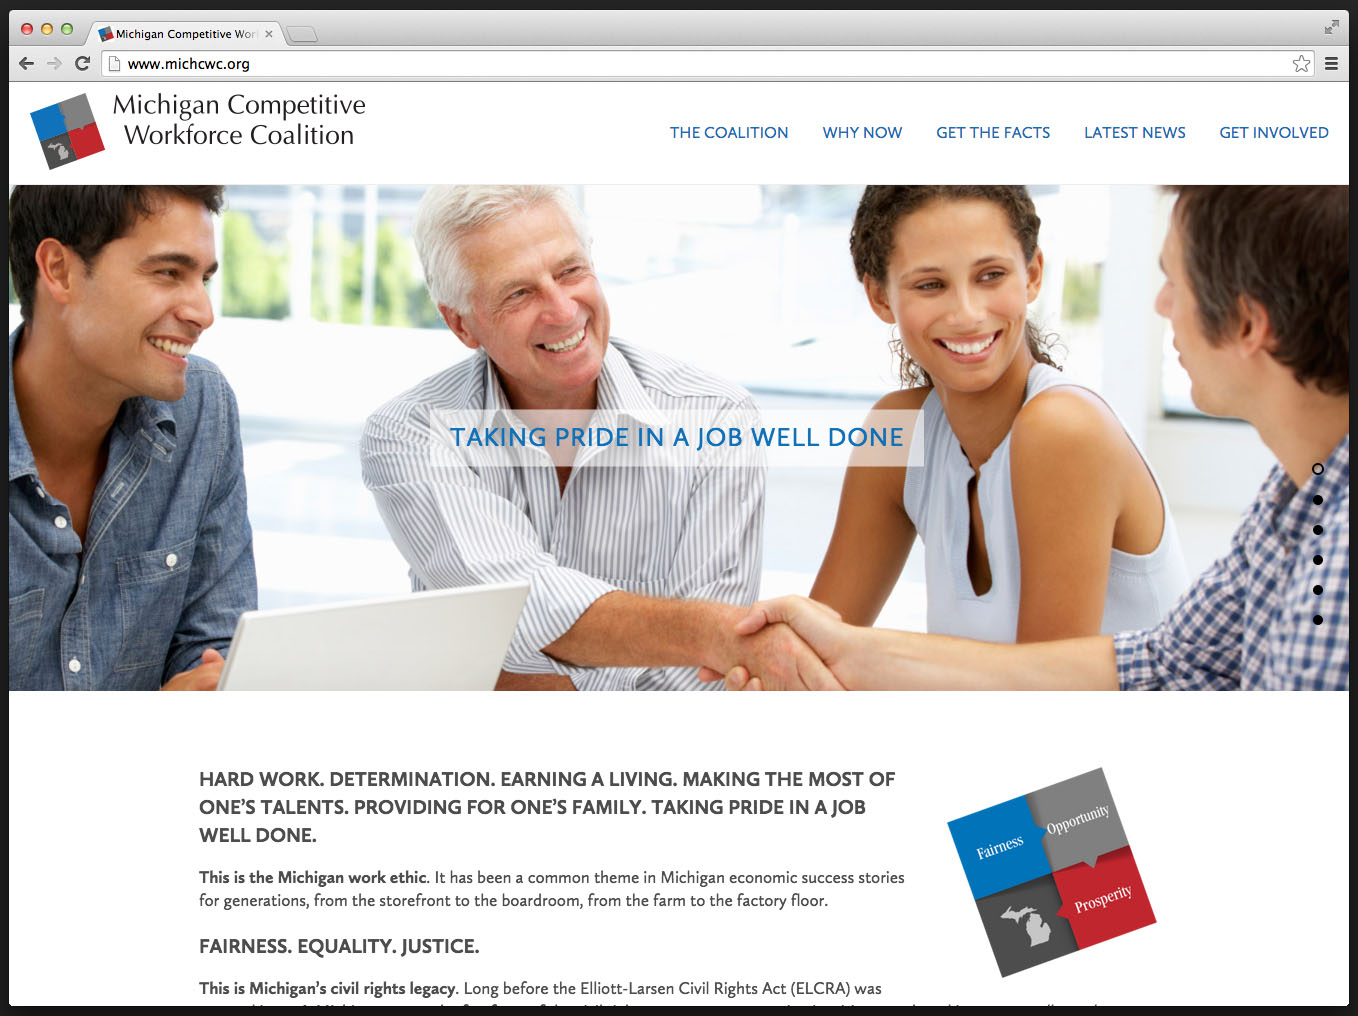 Michigan Competitive Workforce Coalition website